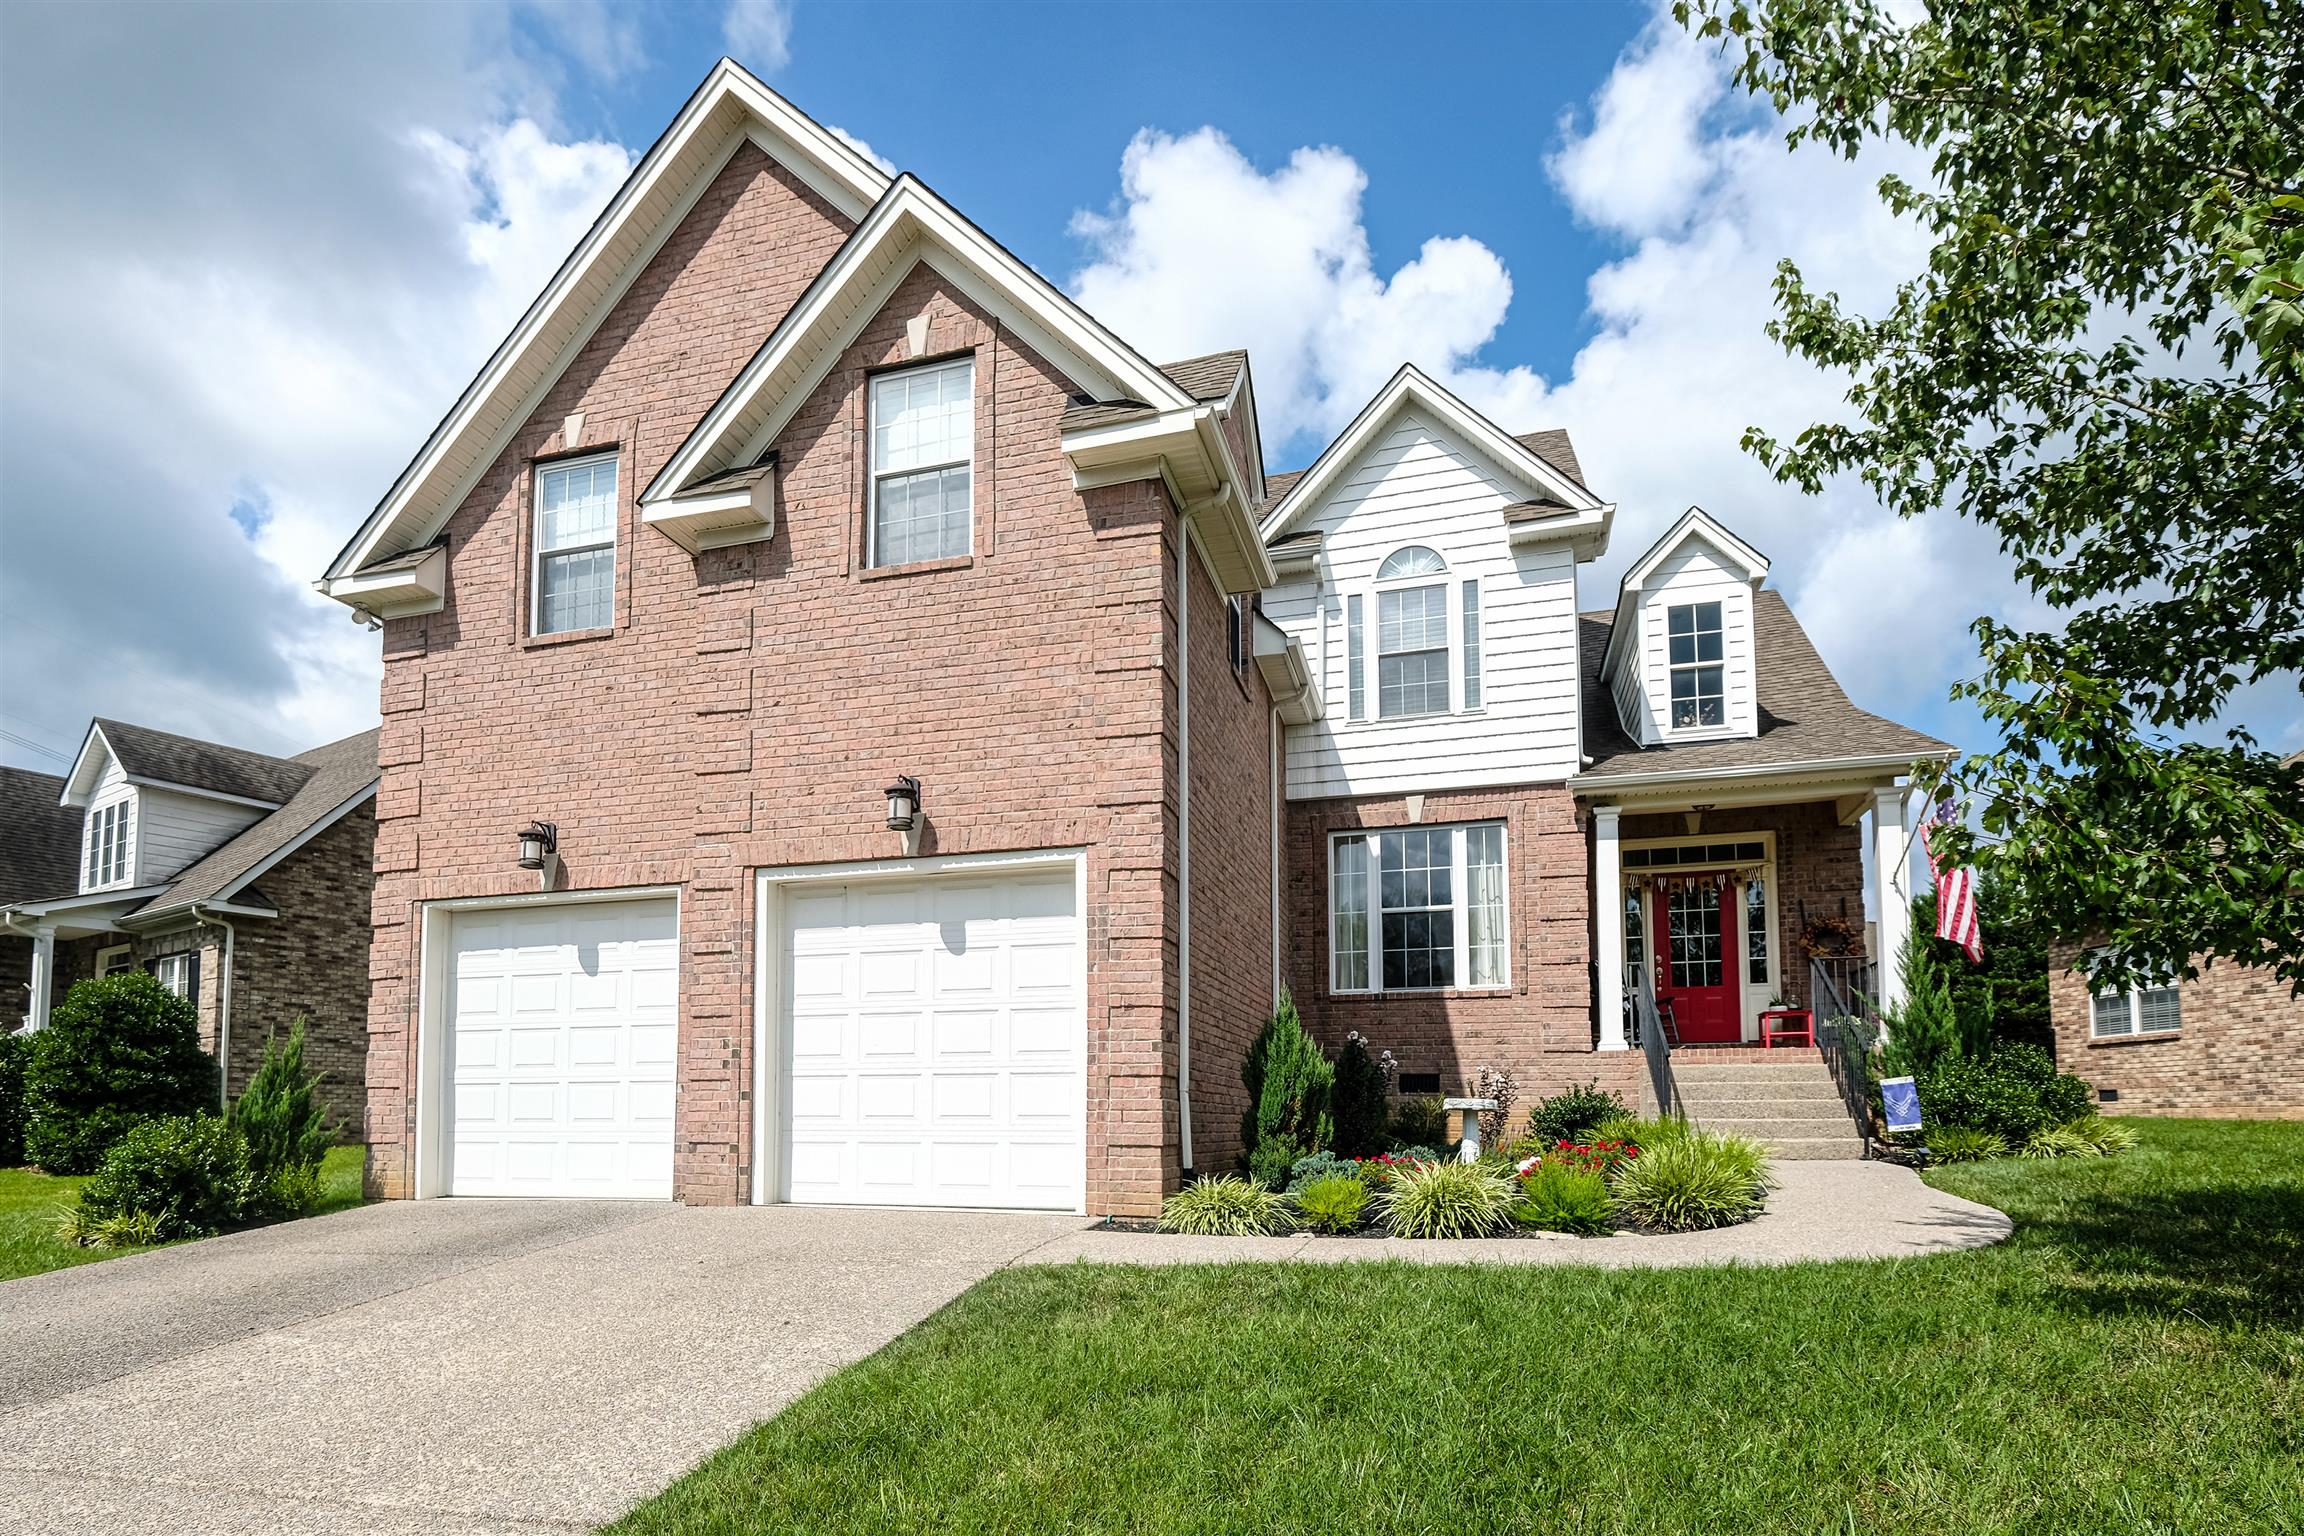 3010 Honeysuckle Dr, Spring Hill, TN 37174 - Spring Hill, TN real estate listing